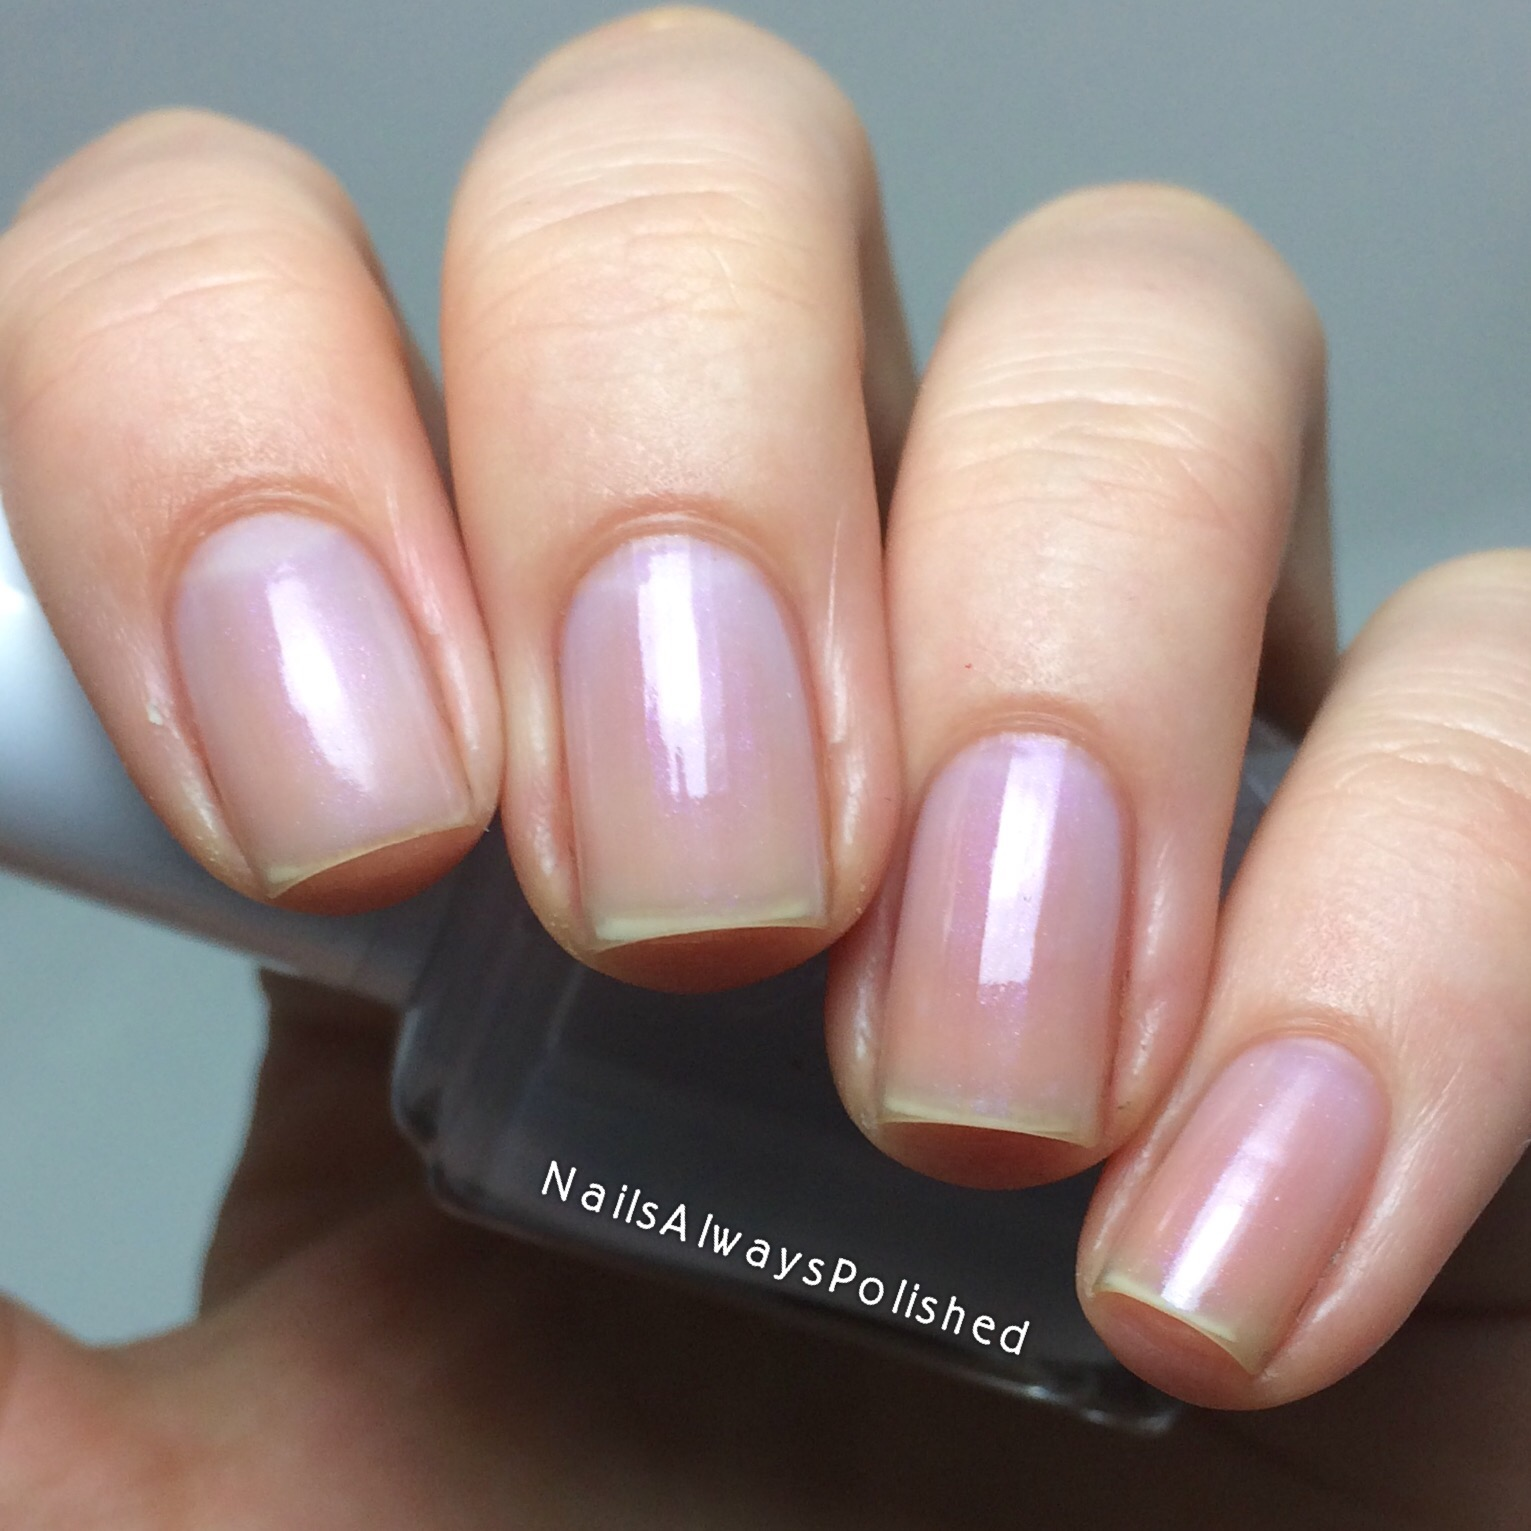 Nails Always Polished: Essie Treat Love & Color